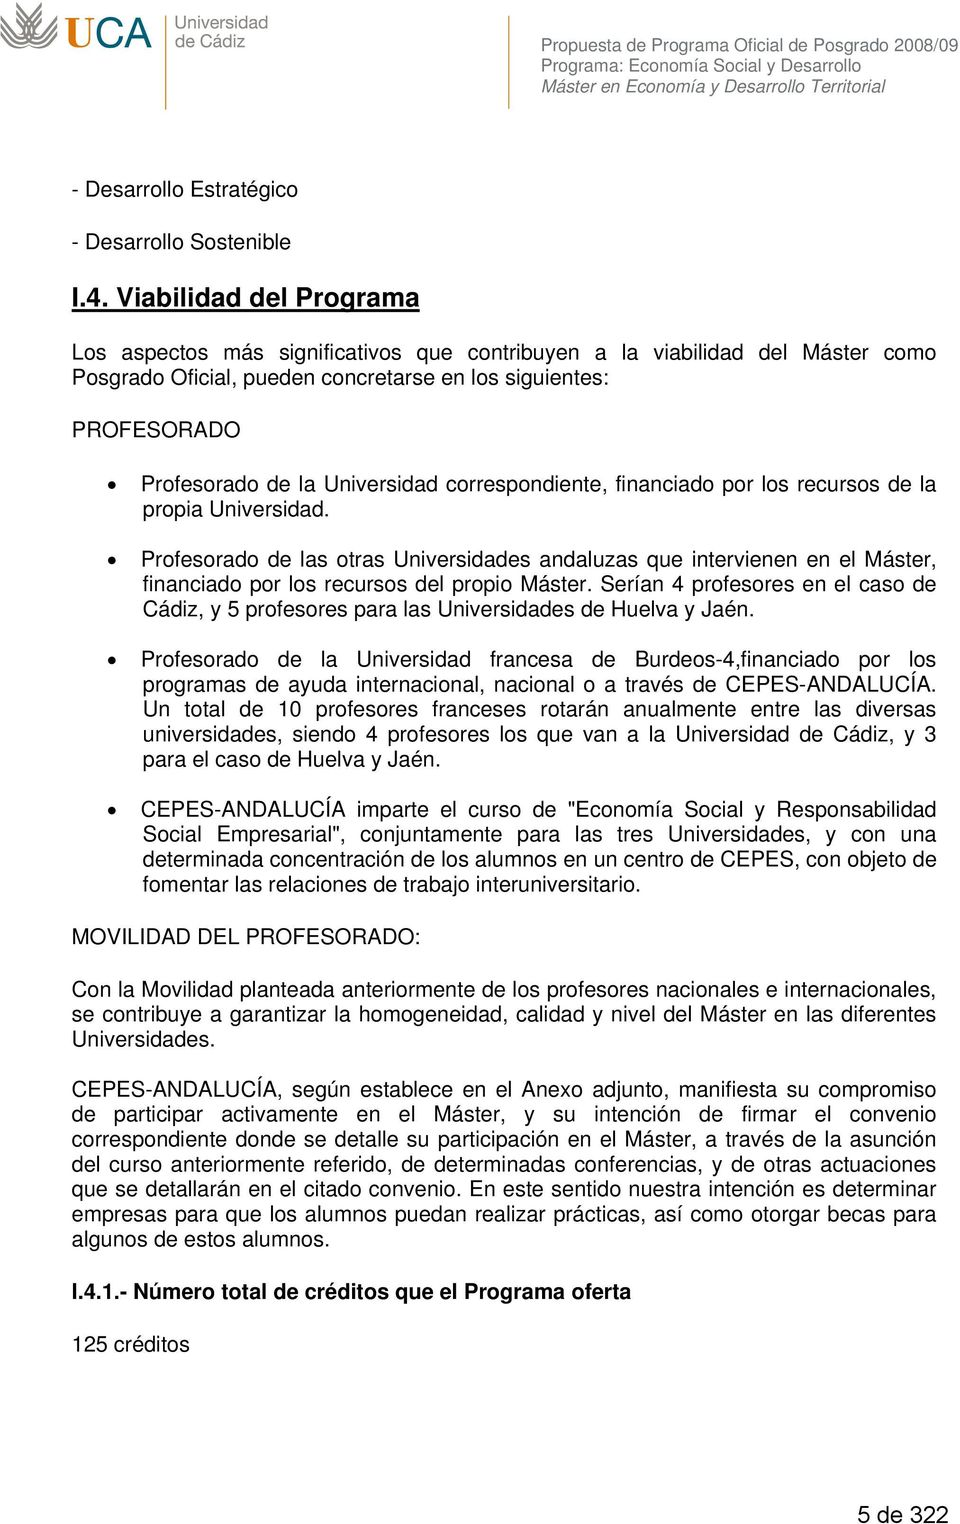 Universidad correspondiente, financiado por los recursos de la propia Universidad.